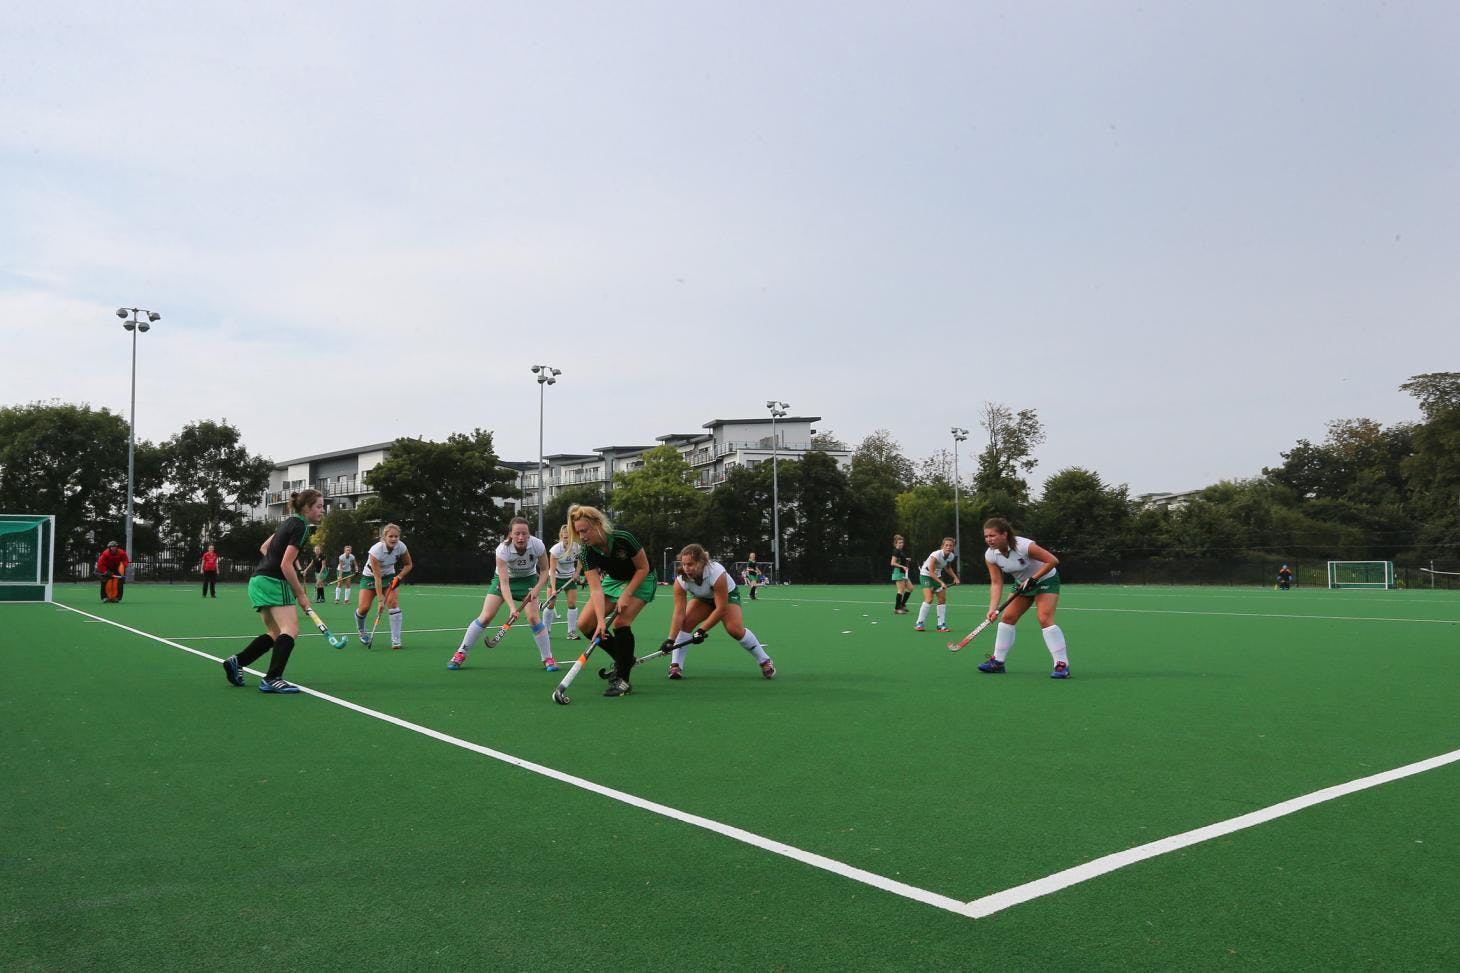 Santry Sports Grounds Outdoor | Astroturf hockey pitch